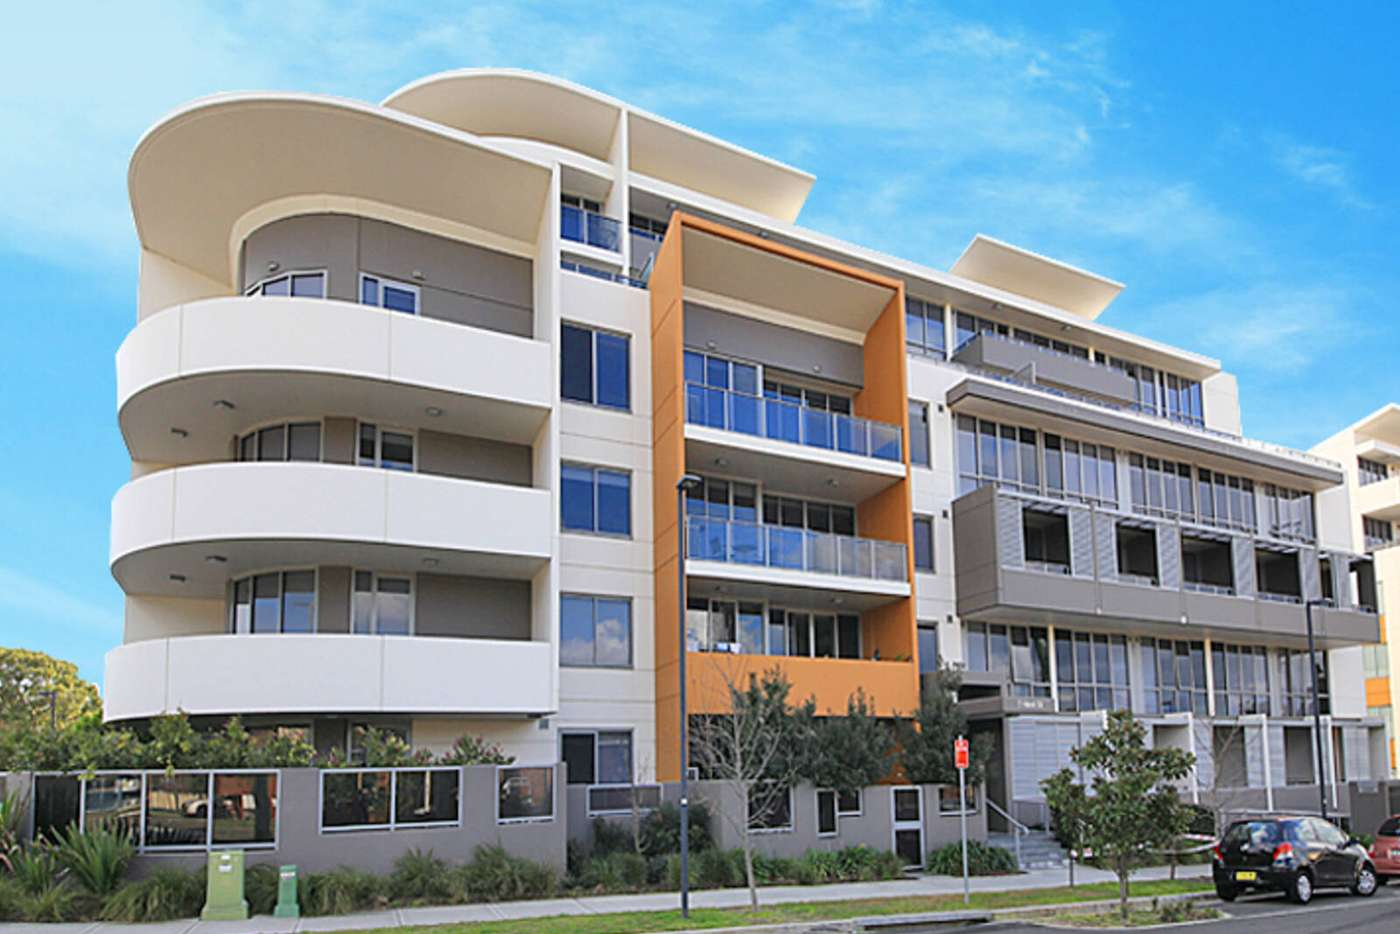 Main view of Homely apartment listing, 355/7 Hirst Street, Arncliffe NSW 2205